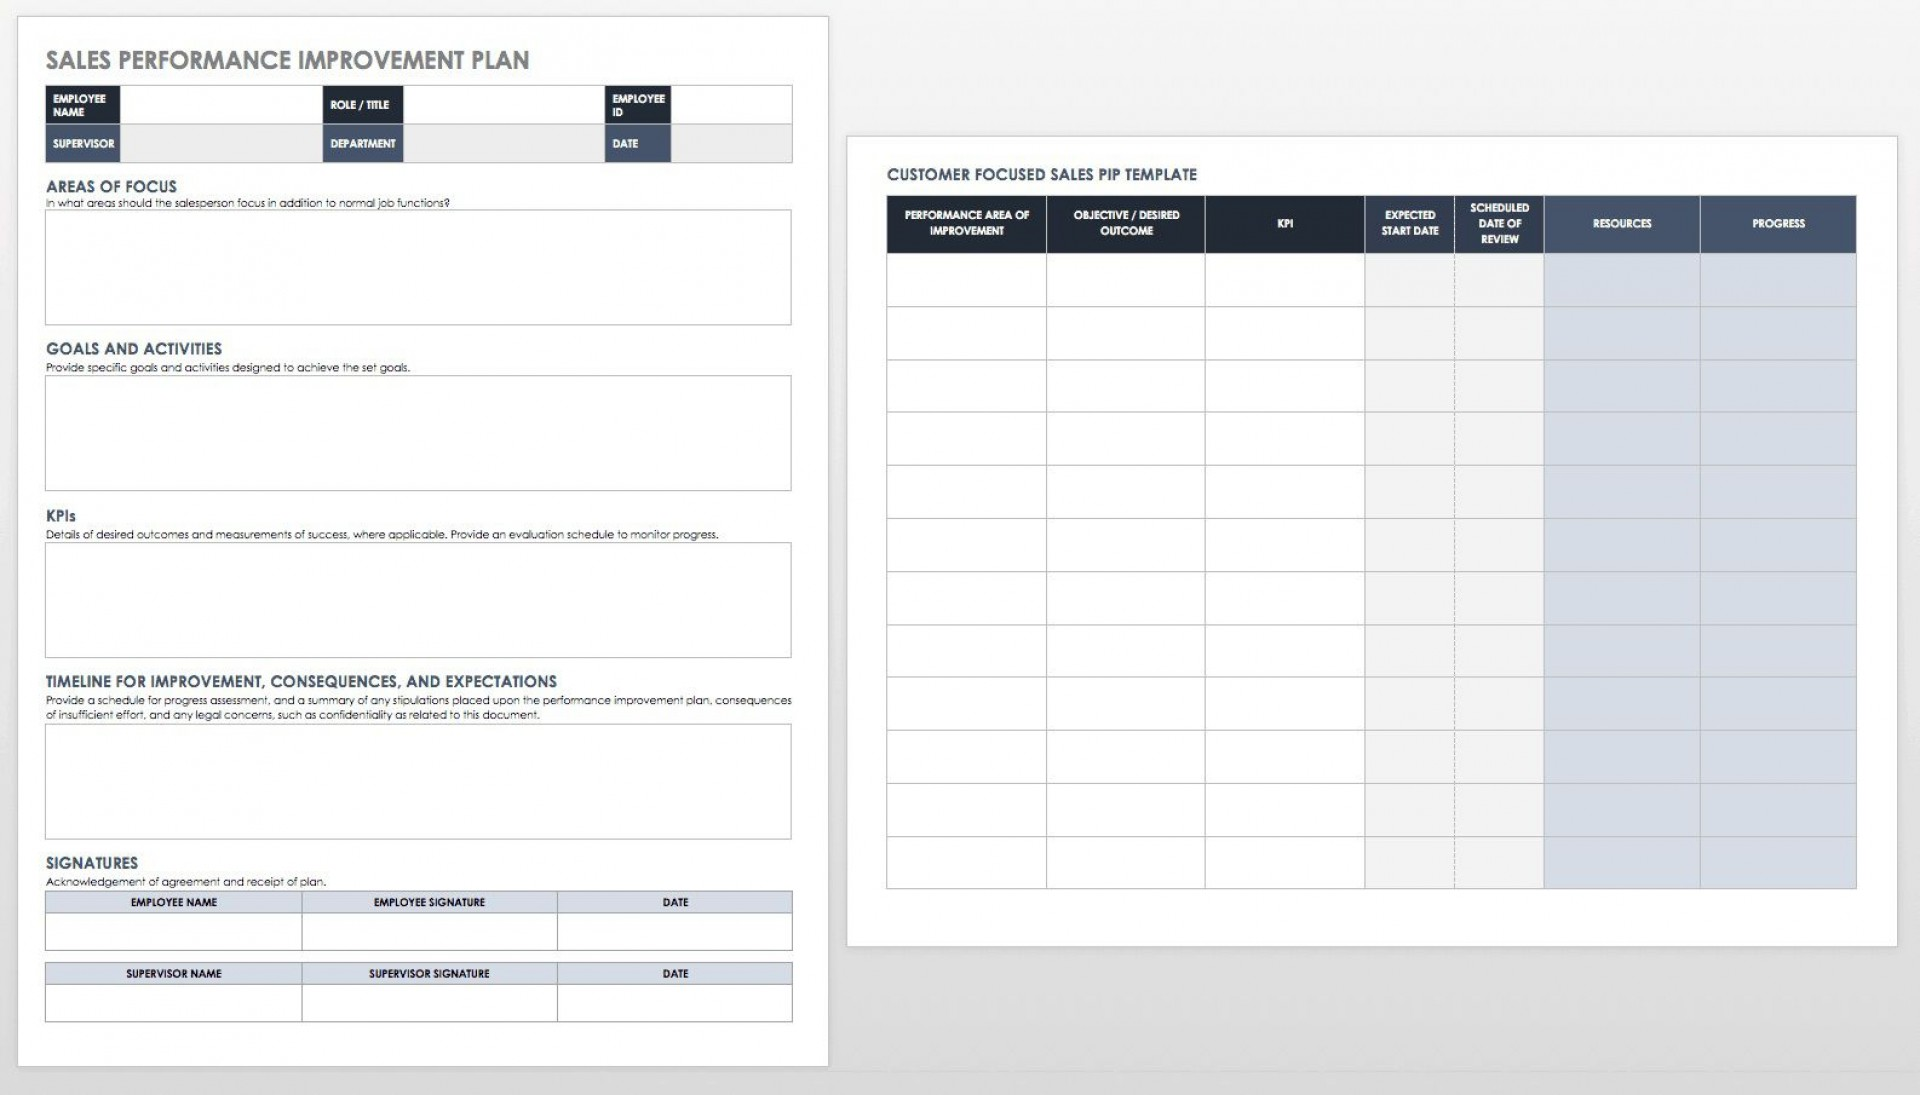 003 Unusual Employee Improvement Plan Template High Definition  Work Performance Example1920